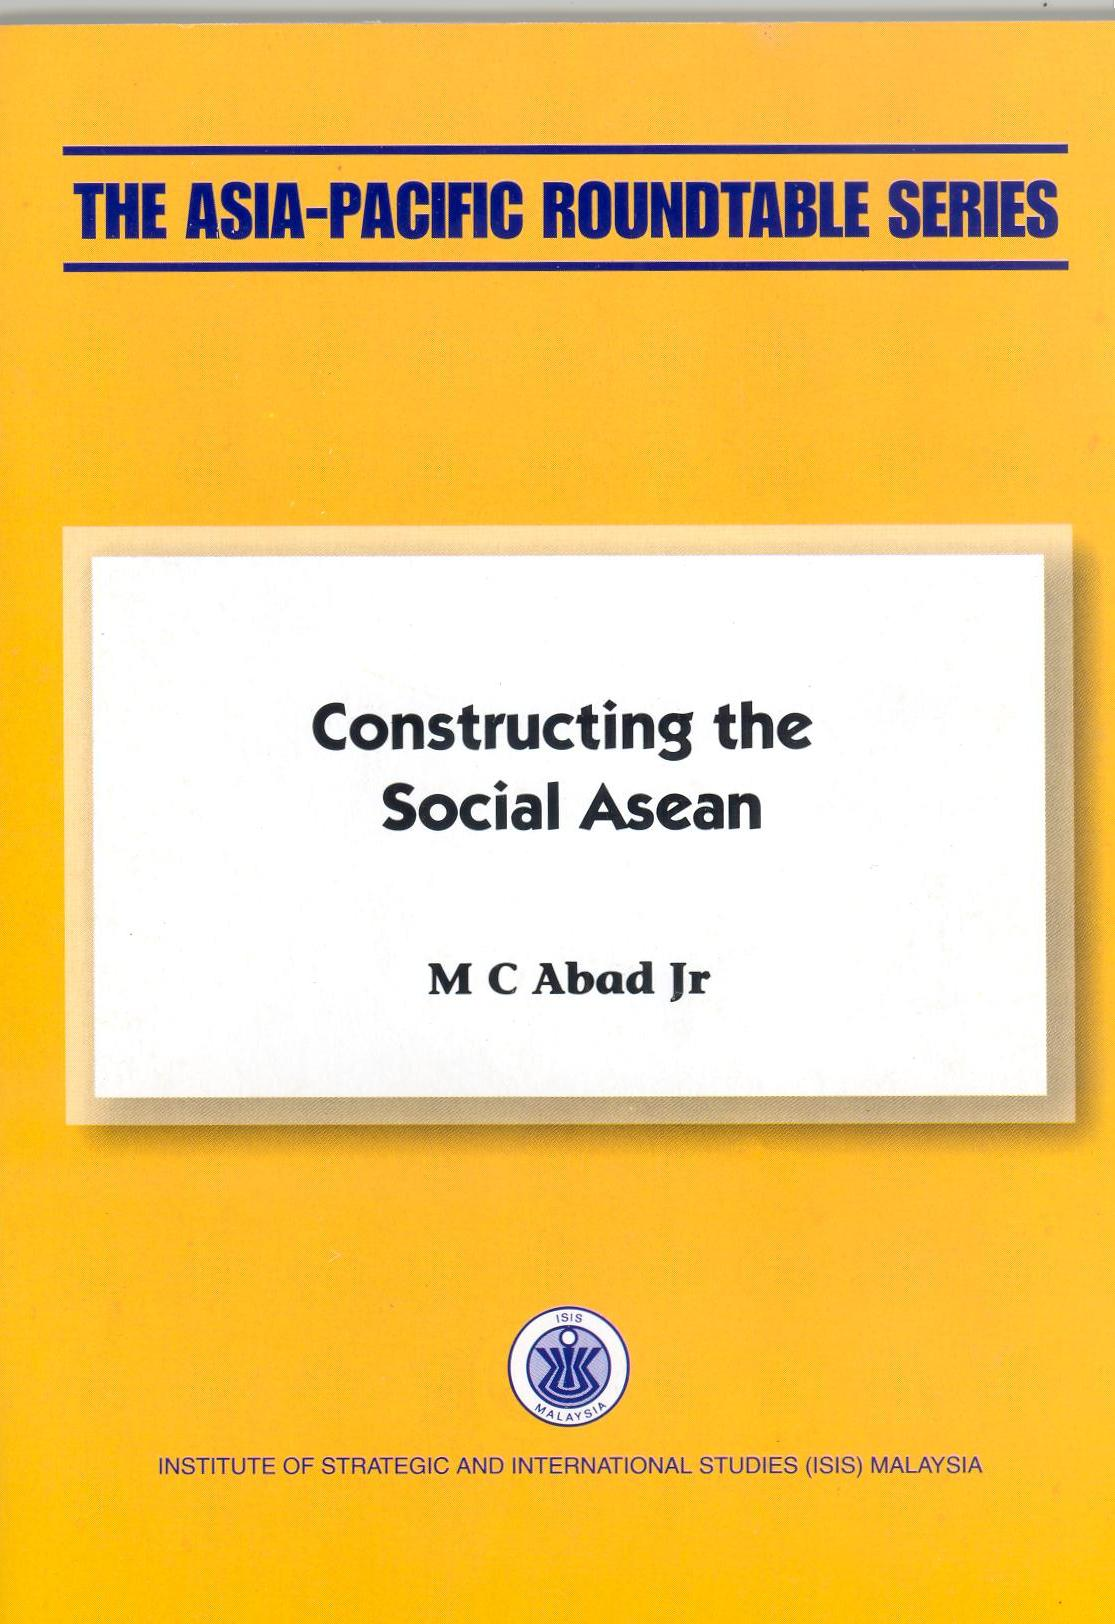 CONSTRUCTING THE SOCIAL ASEAN